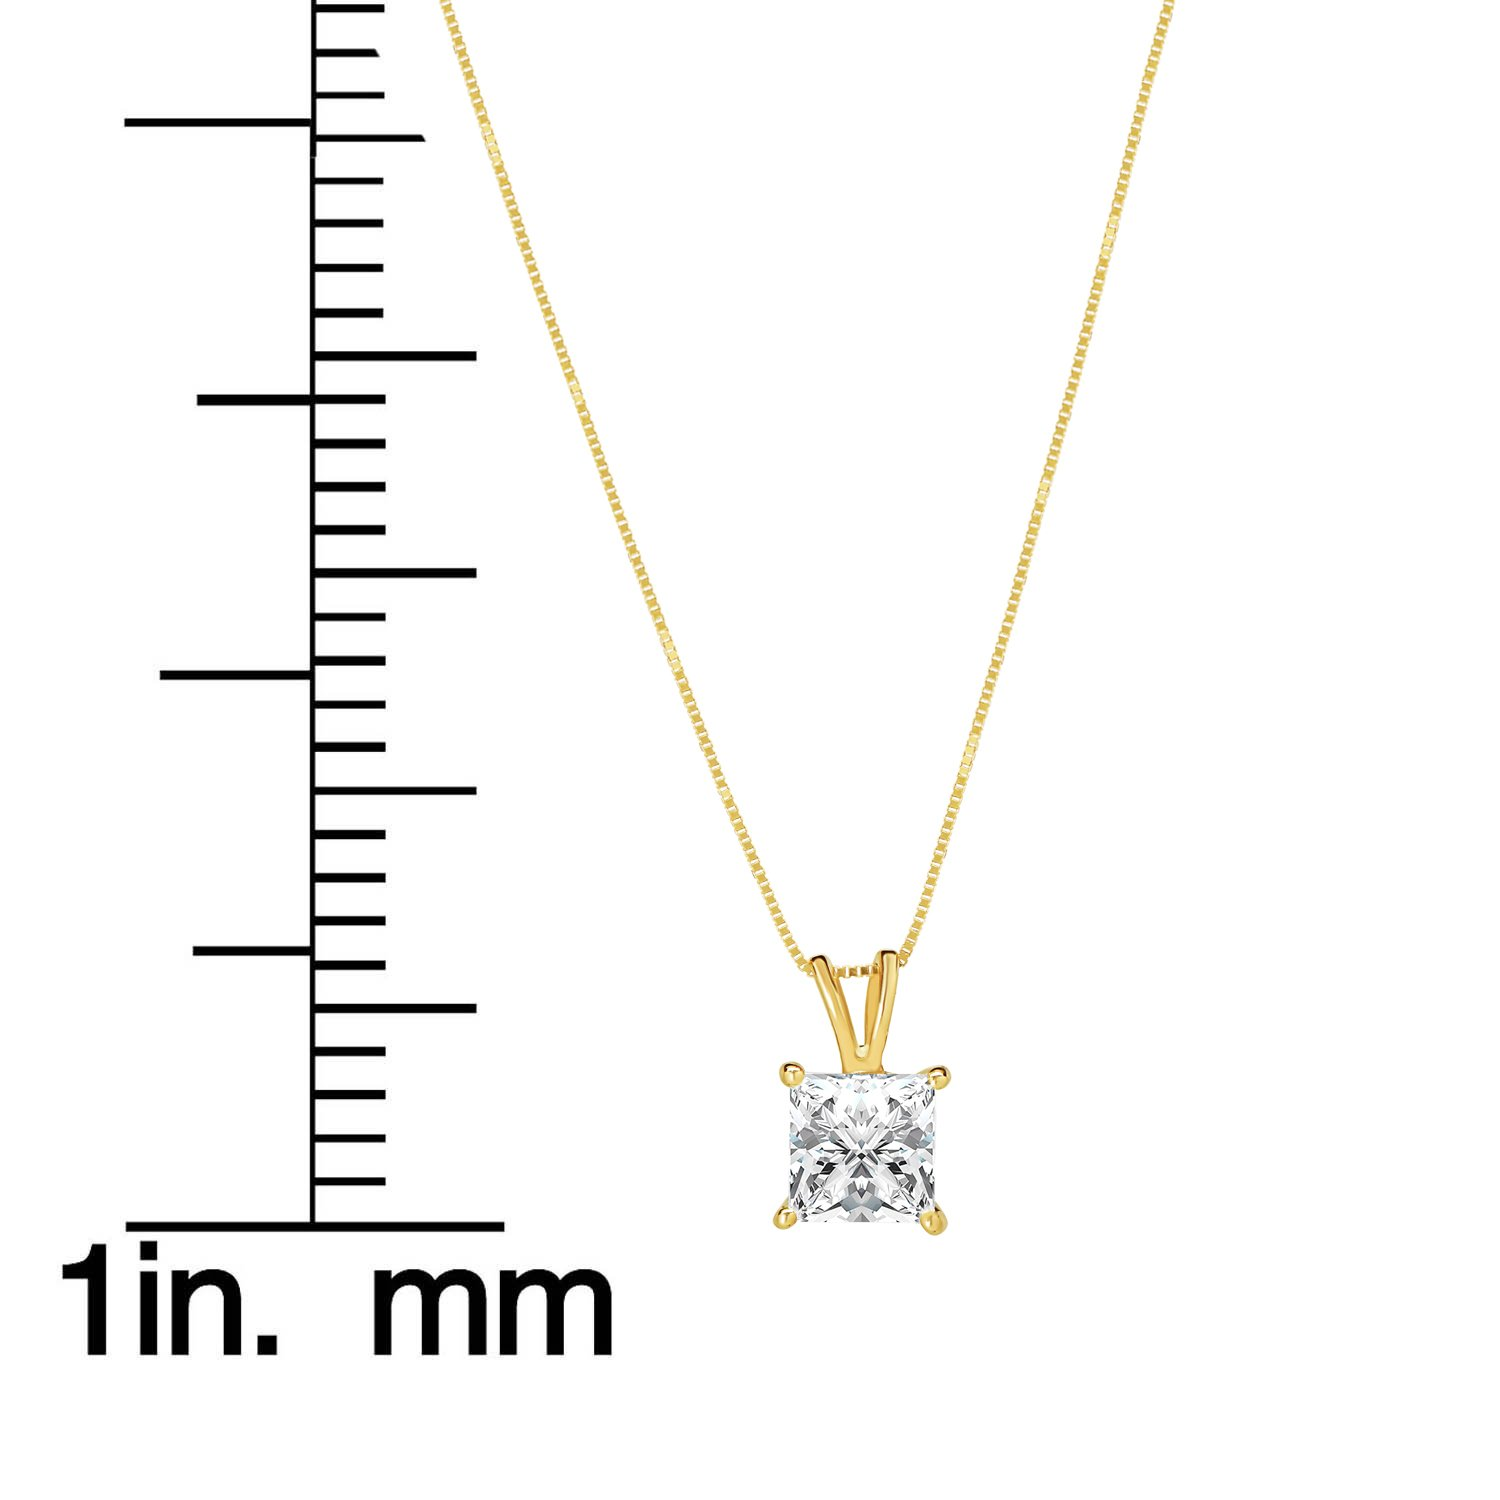 14K Solid Yellow Gold Princess Cut Cubic Zirconia Solitaire Pendant Necklace (2 Carat), 16 inch .50mm Box Link Chain, Gift Box by Everyday Elegance Jewelry (Image #6)